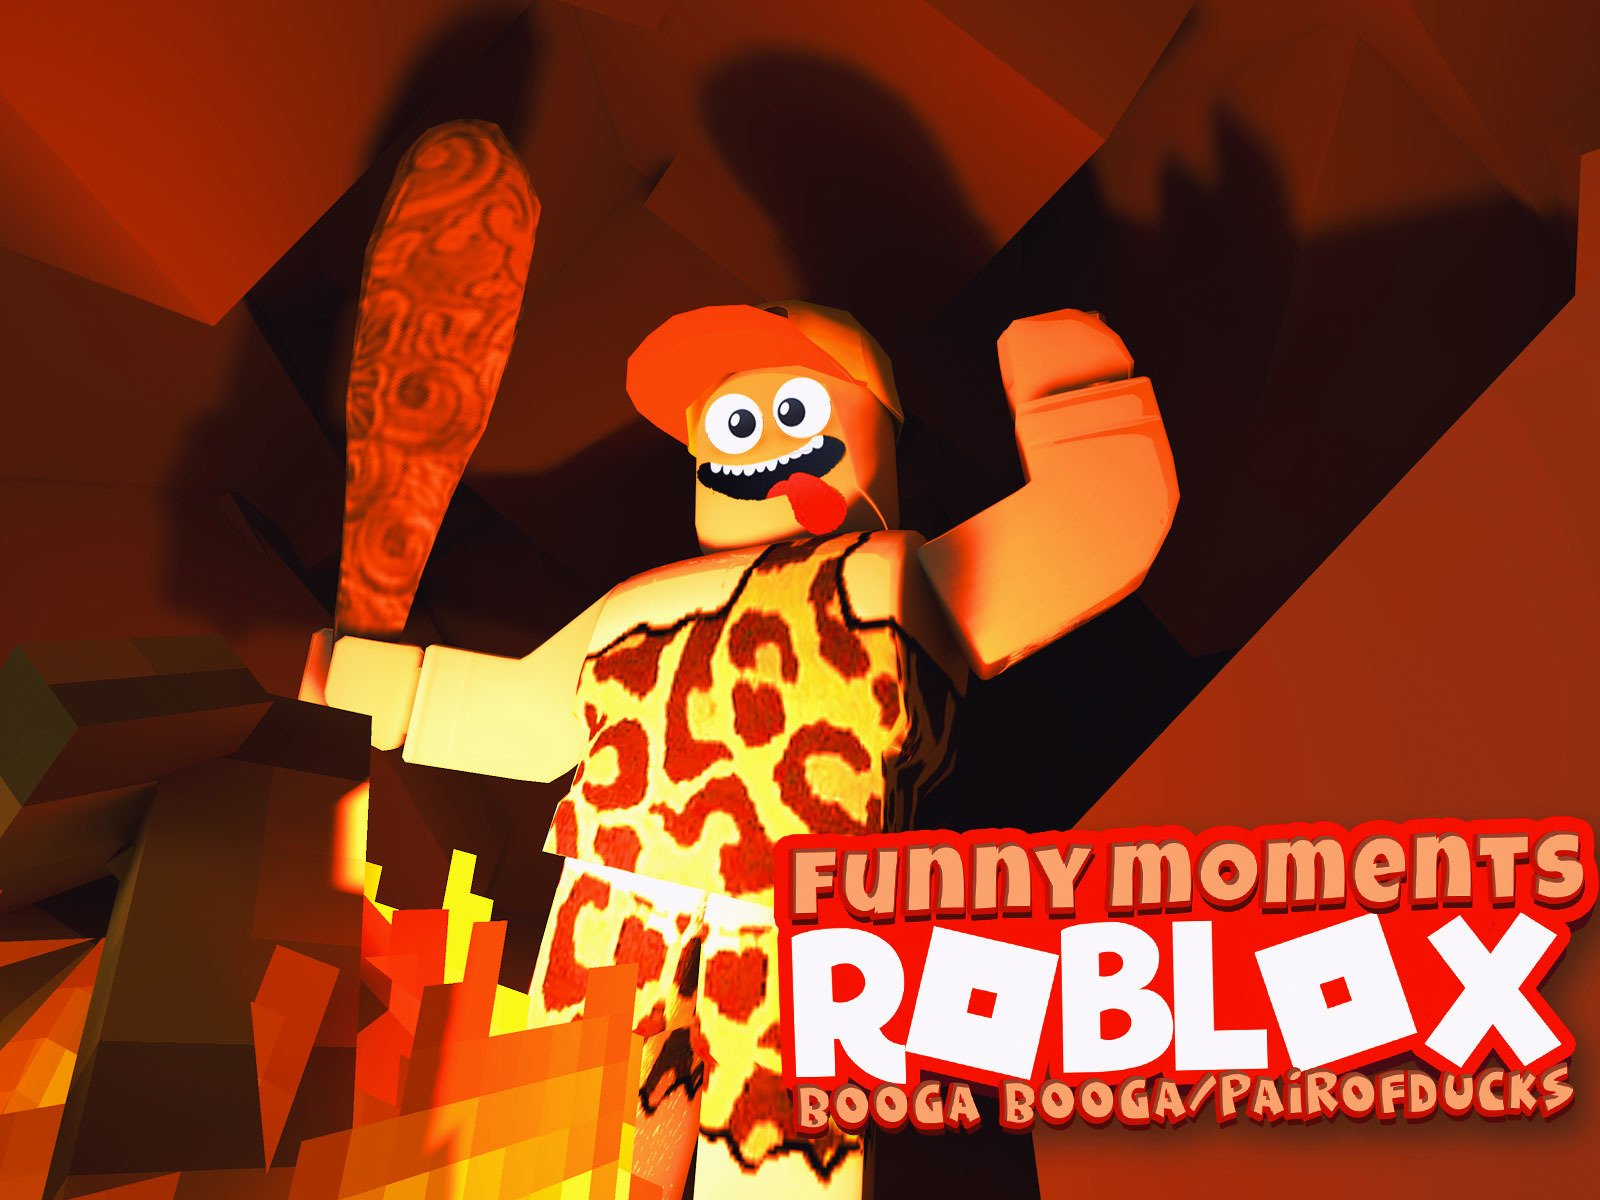 Roblox Booga Booga (PairofDucks Funny Moments)